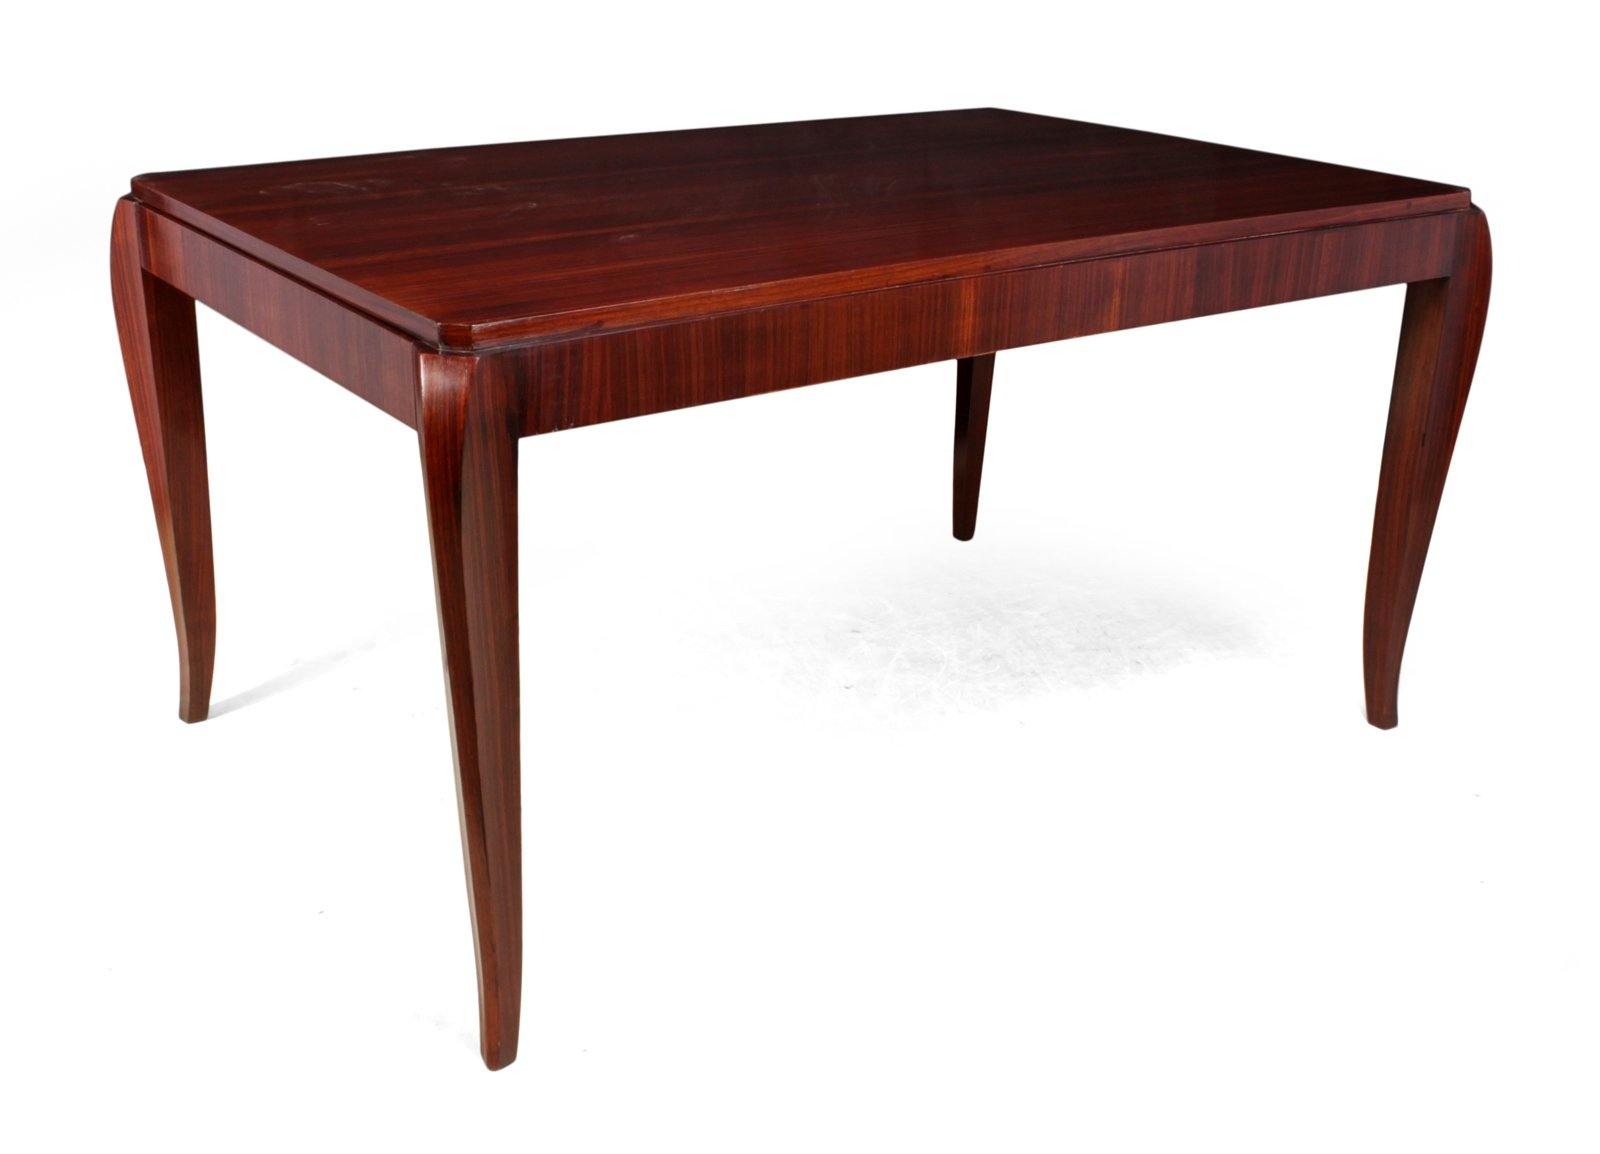 French Art Deco Dining Table C1920